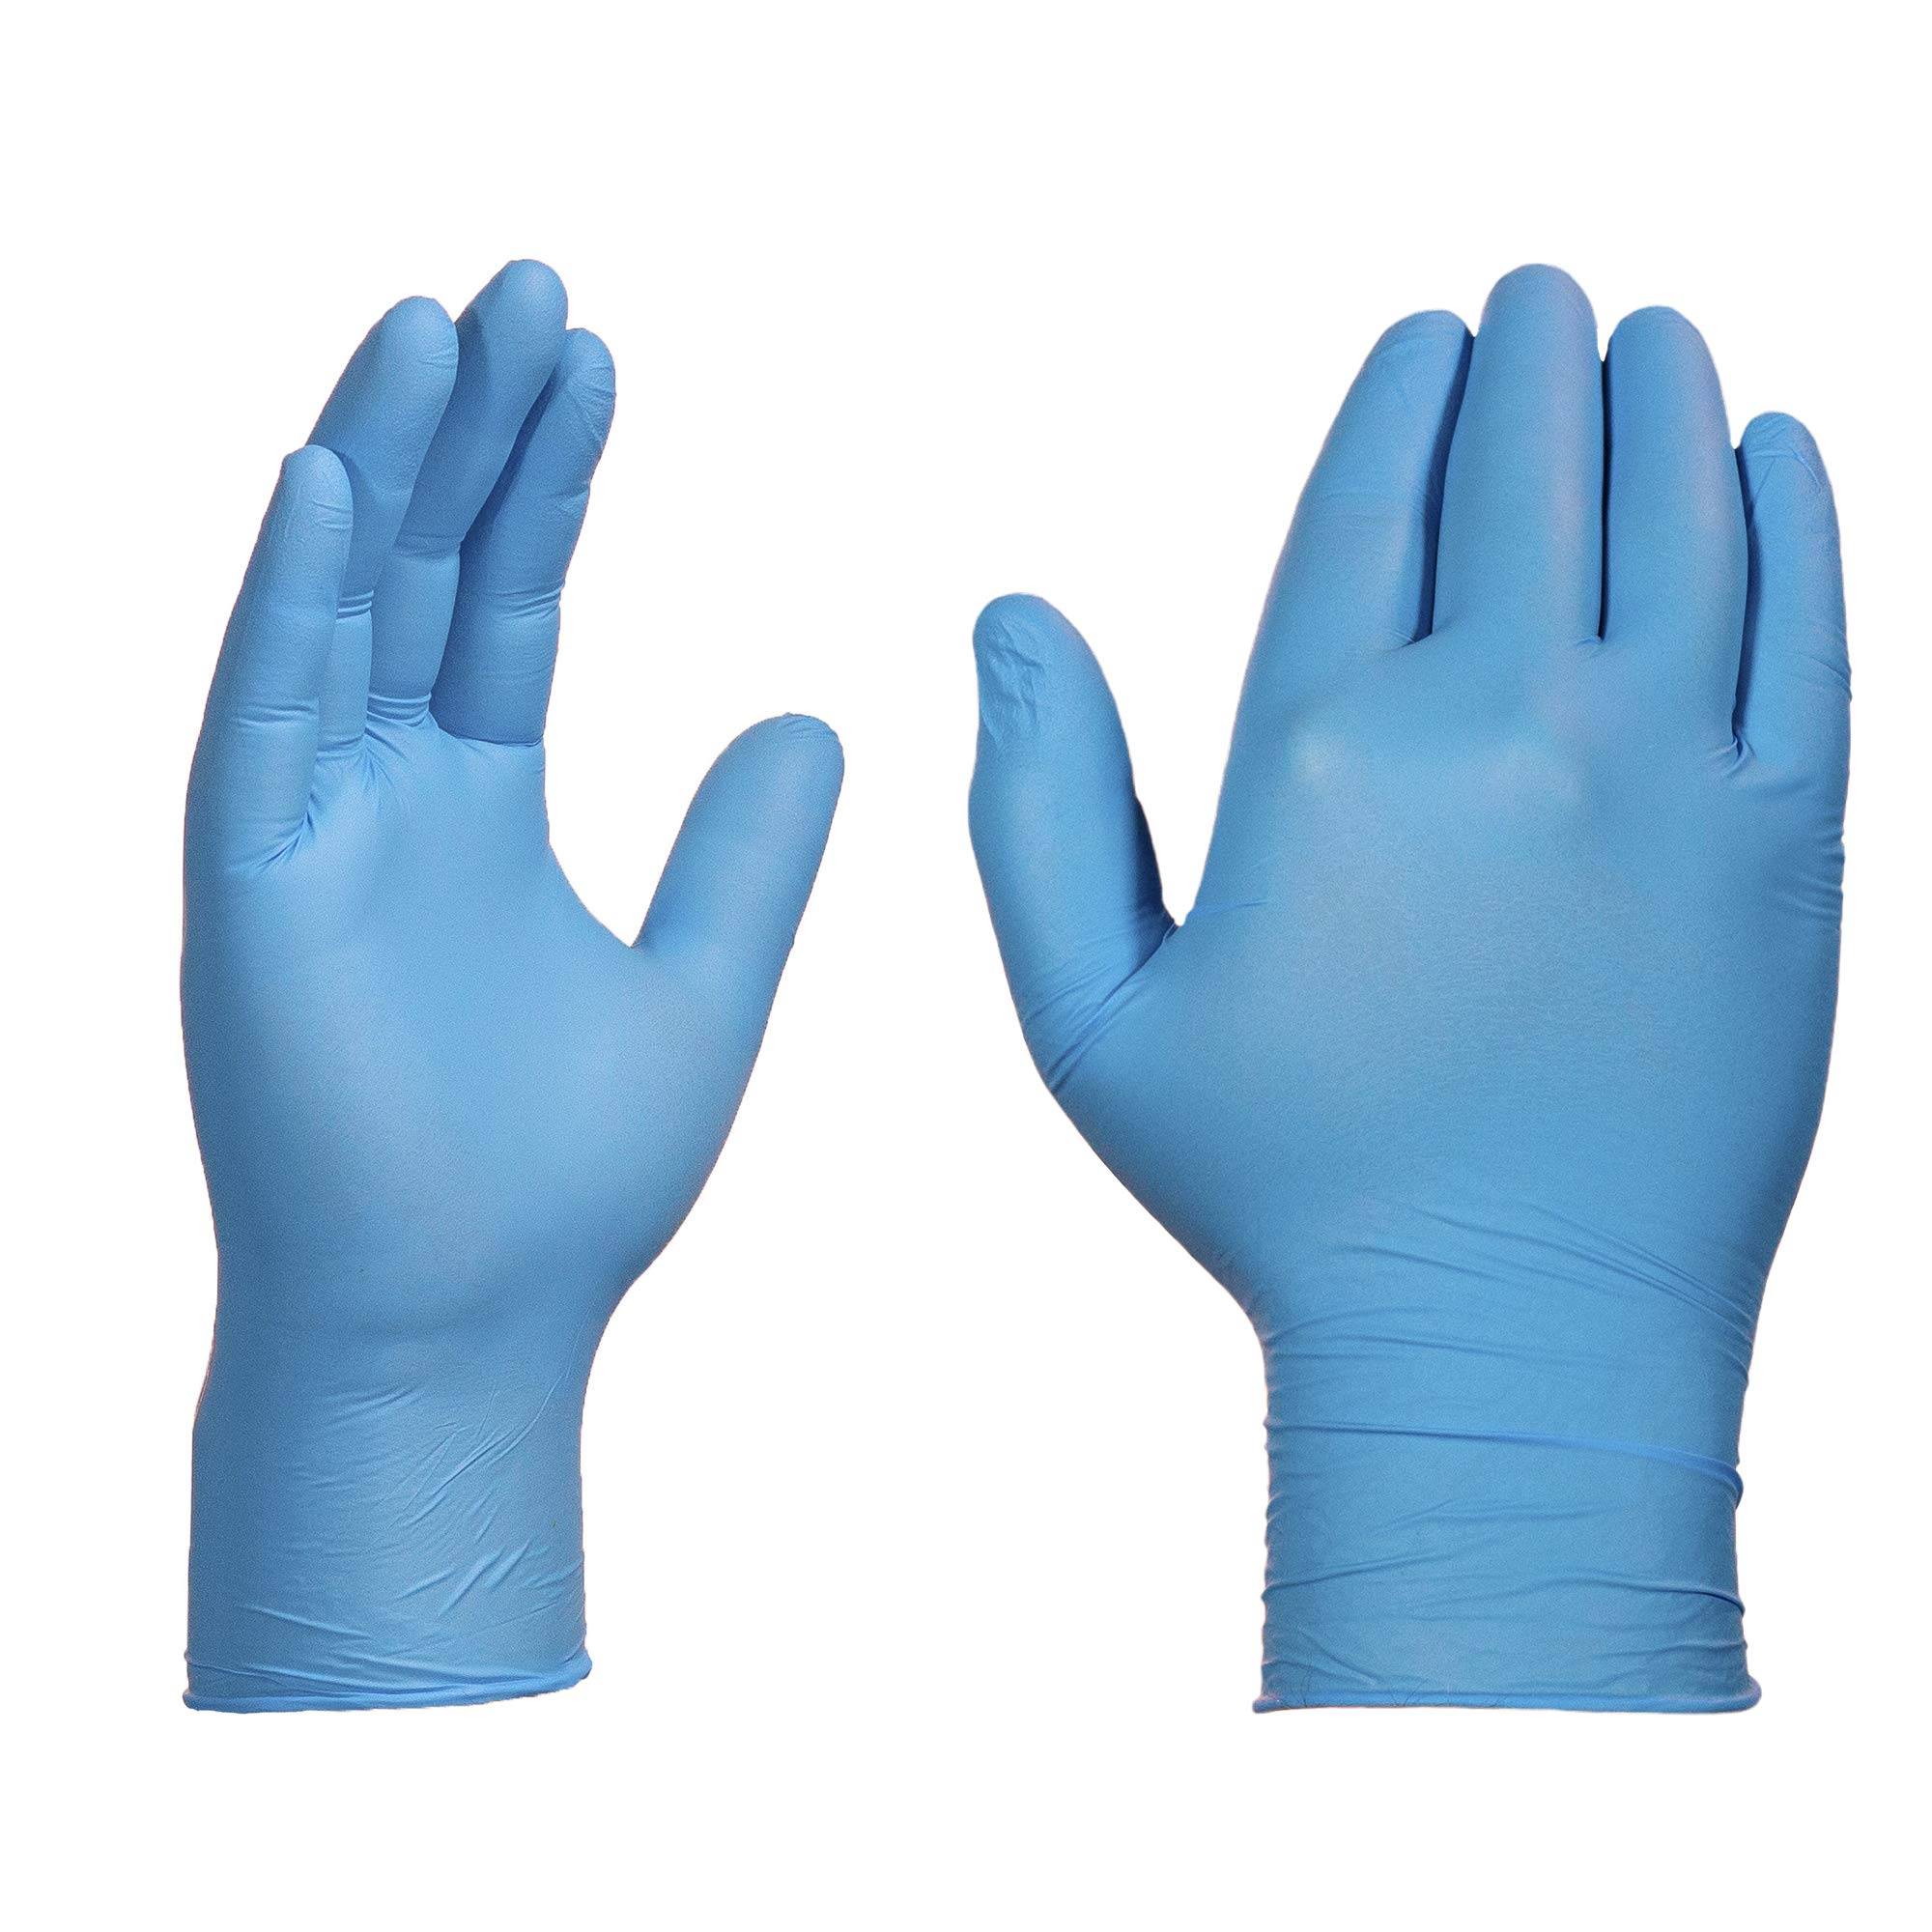 AMMEX Blue Nitrile Exam 4 Mil Disposable Gloves - Exam Grade, Powder-Free, Textured, Non-Sterile, Large, Case of 1000